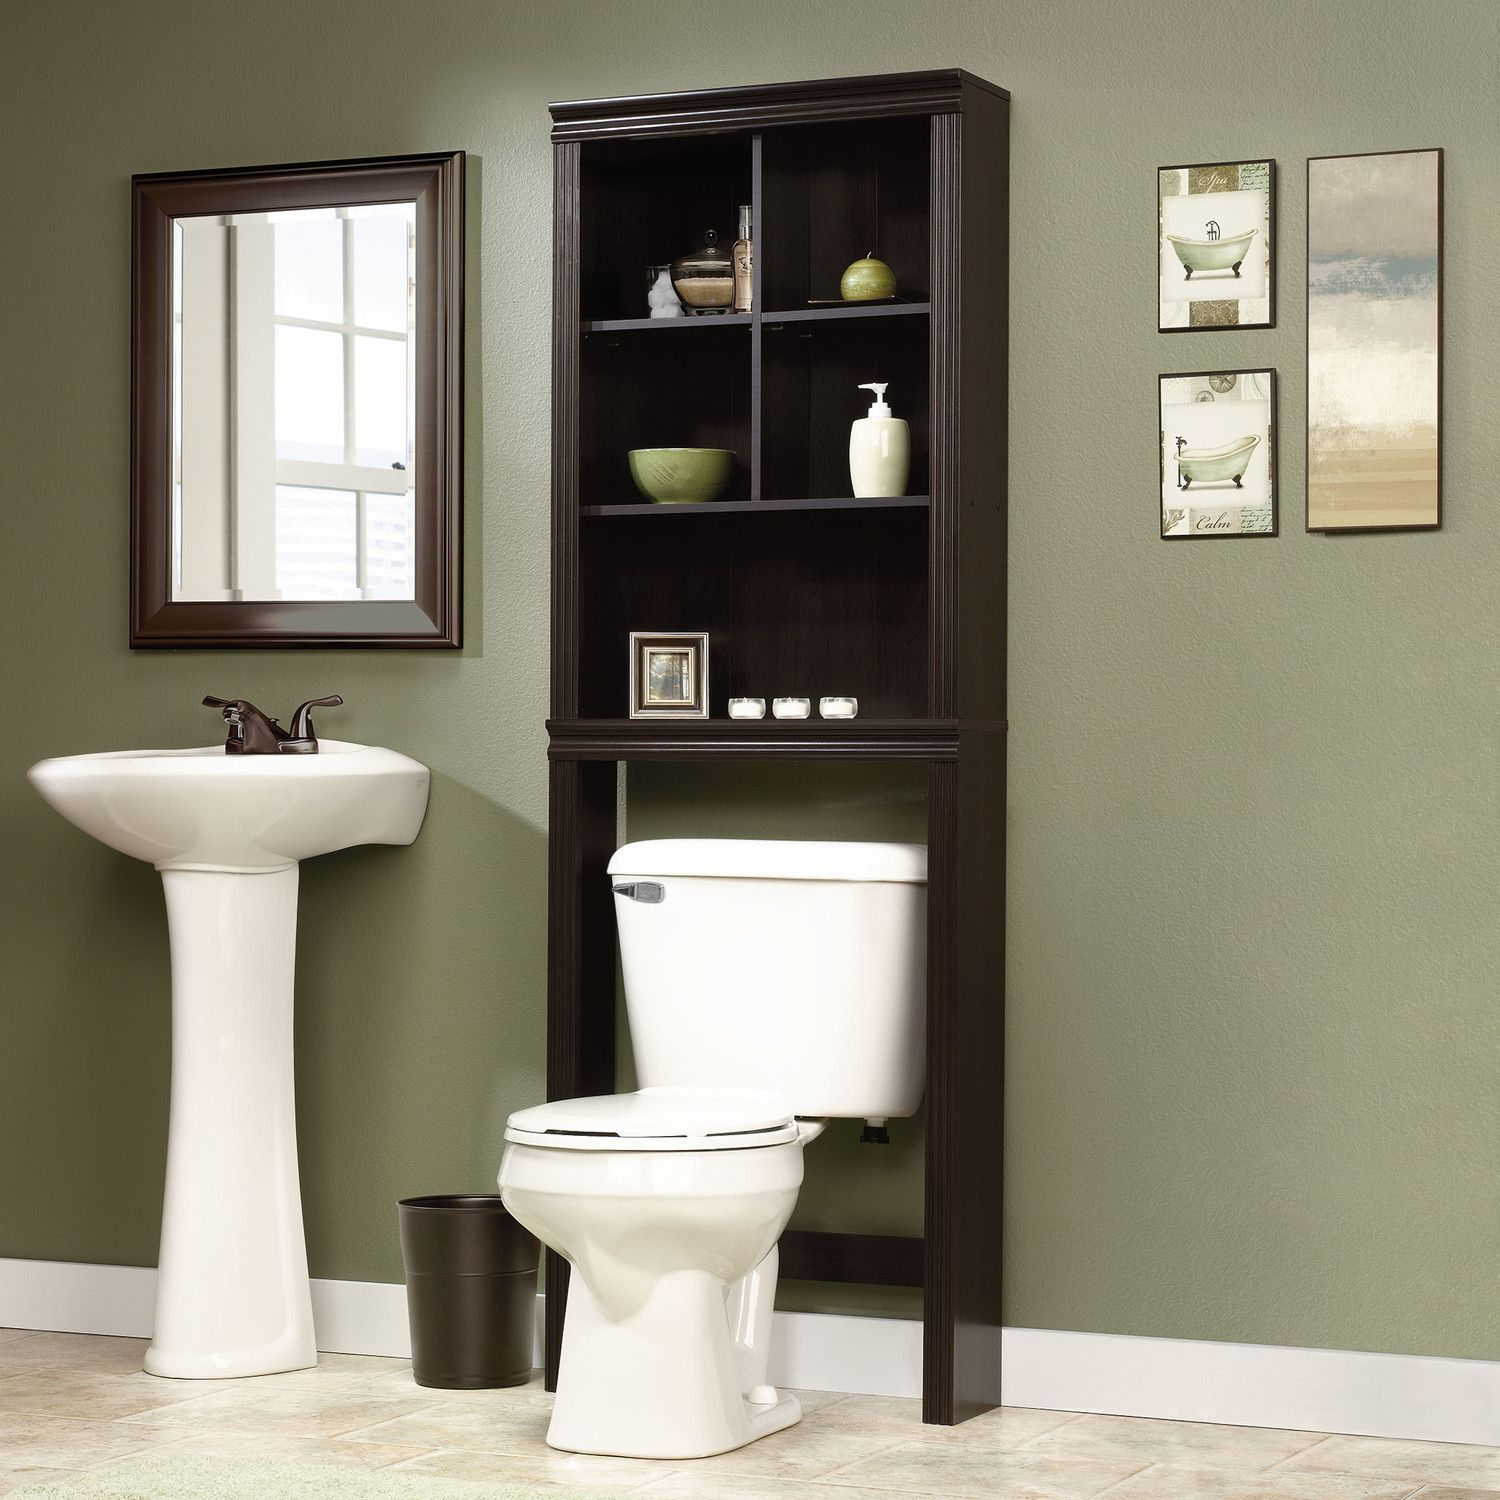 mirror design a standing cabinet etagere pattern white ideas black free wooden over three beautiful size the bathroom doos with to toilet floor square adorn decoration full and